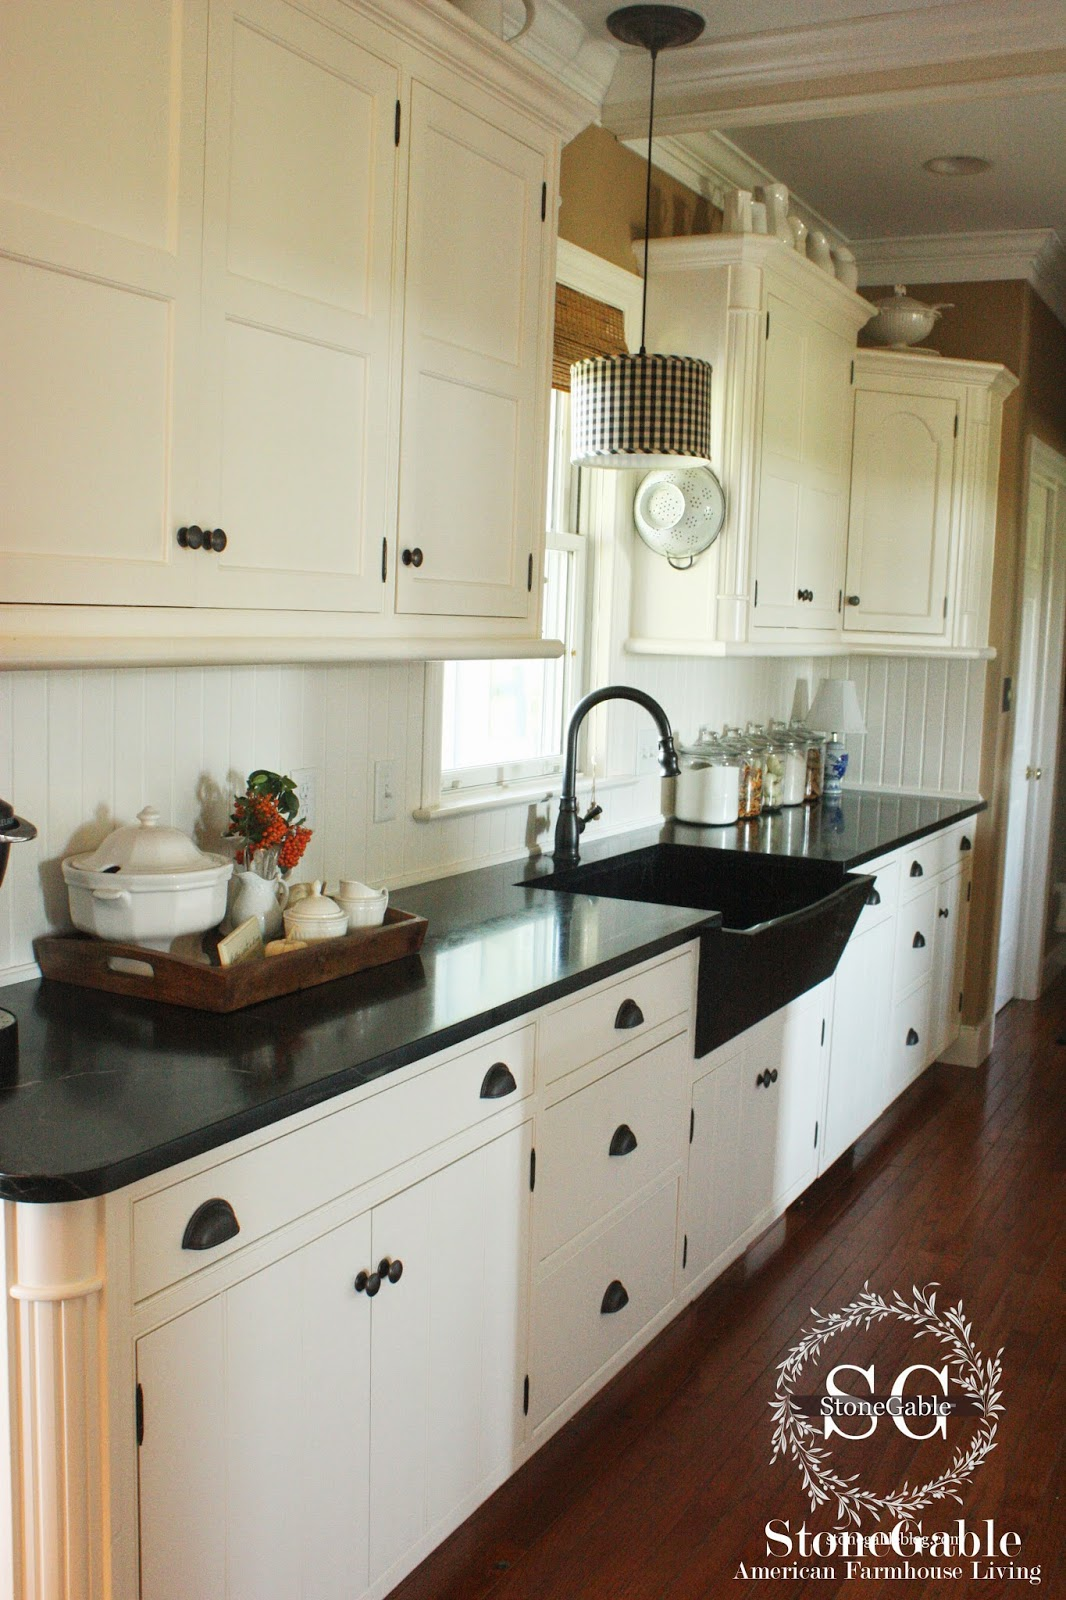 10 ELEMENTS OF A FARMHOUSE KITCHEN - StoneGable on dark cabinets with hardware, dark cabinets with backsplashes, dark granite countertops, dark marble countertops, dark grey countertops, dark cabinets black countertop, dark color laminate countertops, dark floors light cabinets dark countertops, dark cabinets with quartz,